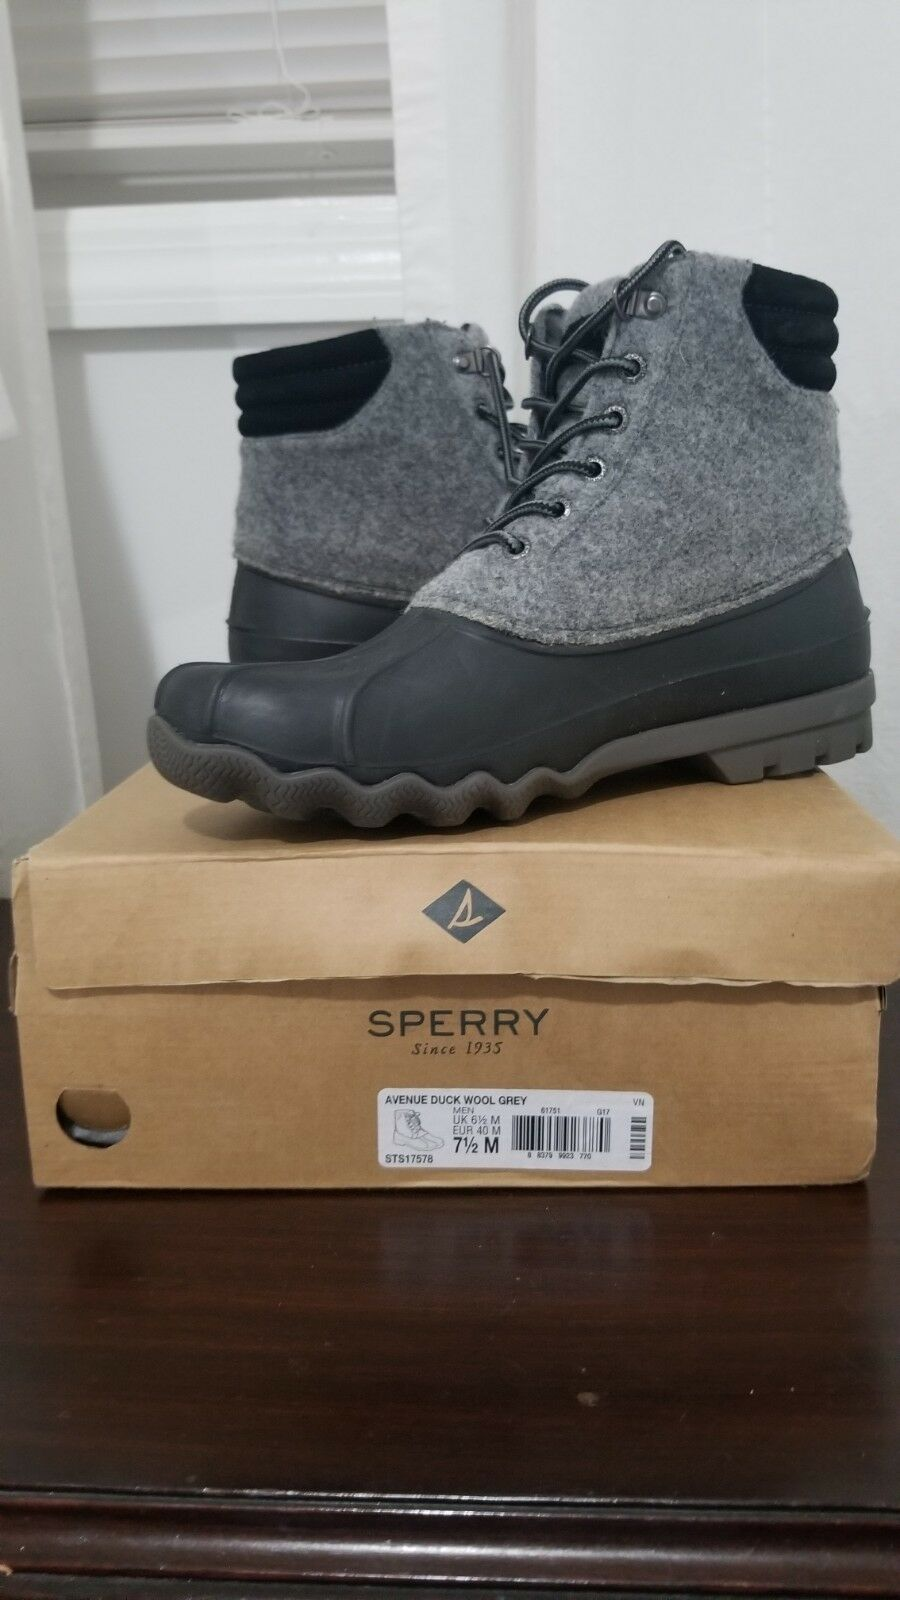 Sperry Top-Sider Avenue / Duck Boots (Men's) $110 Grey Wool / Avenue Leather NEW aaa568